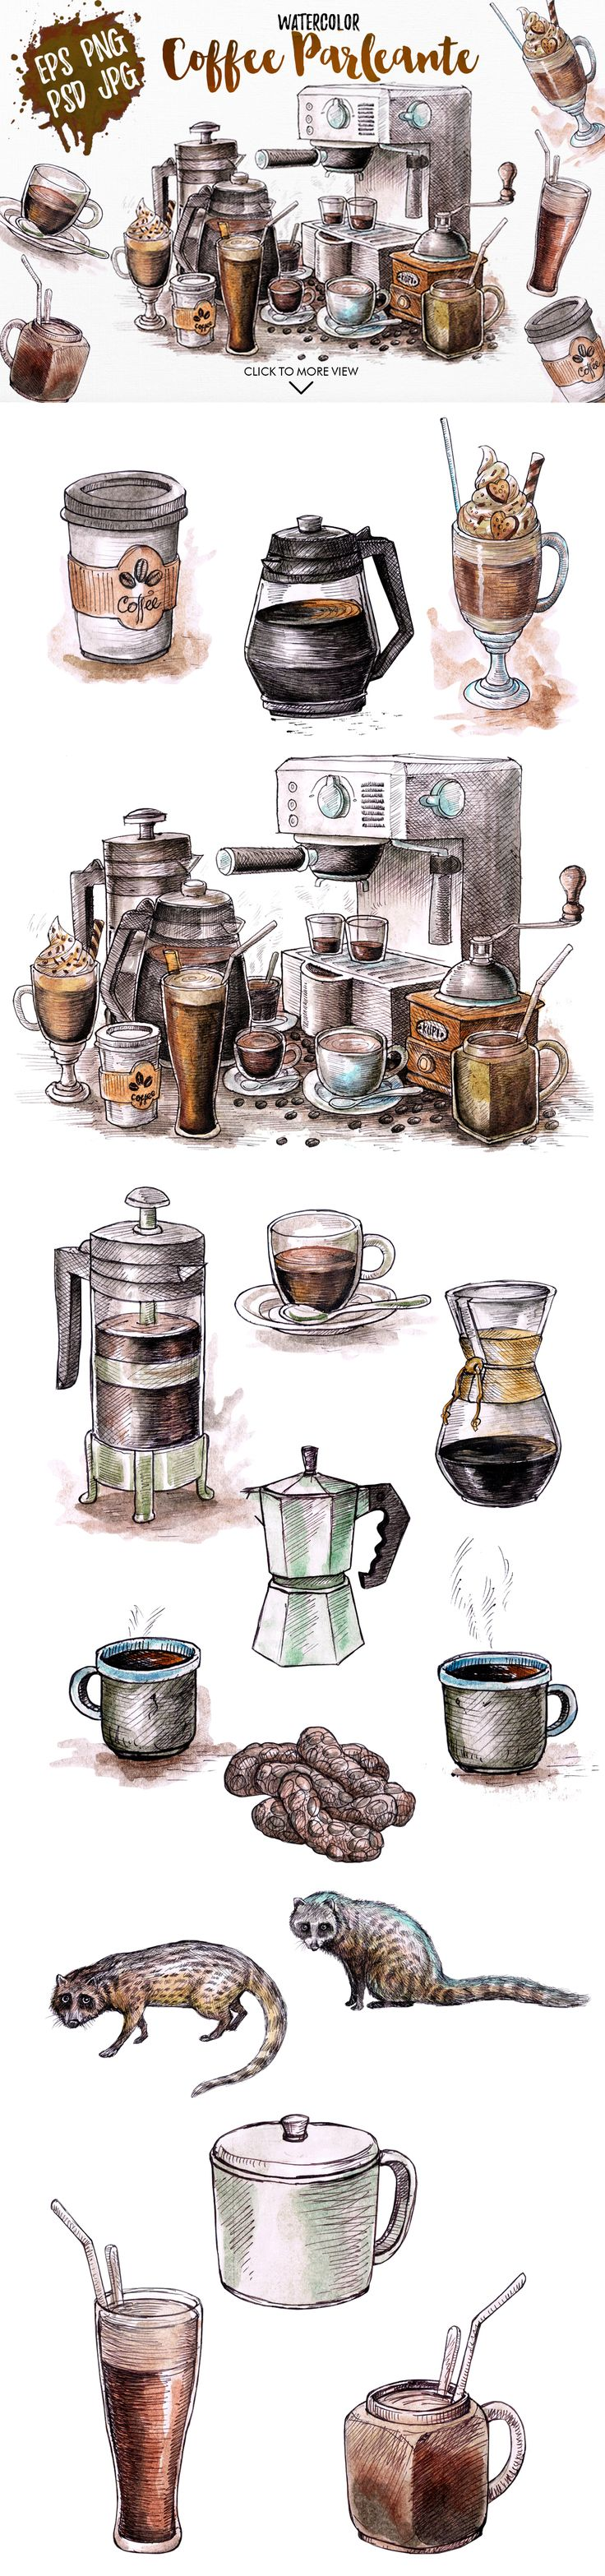 hallo guys ..... It is an element of black coffee connection parleante of watercolor coffee element further, you can use this to the creative needs of your business, interesting material small arms designed for cooking food, menu design, banners, cards, harvest festivals, farmer's markets opening a cafe, restaurant and private use sand as logos and visual aids teachers. Imagine how neat it would be seen on invitations, stickers, cards, digital scrap book, your website, and anything you c...